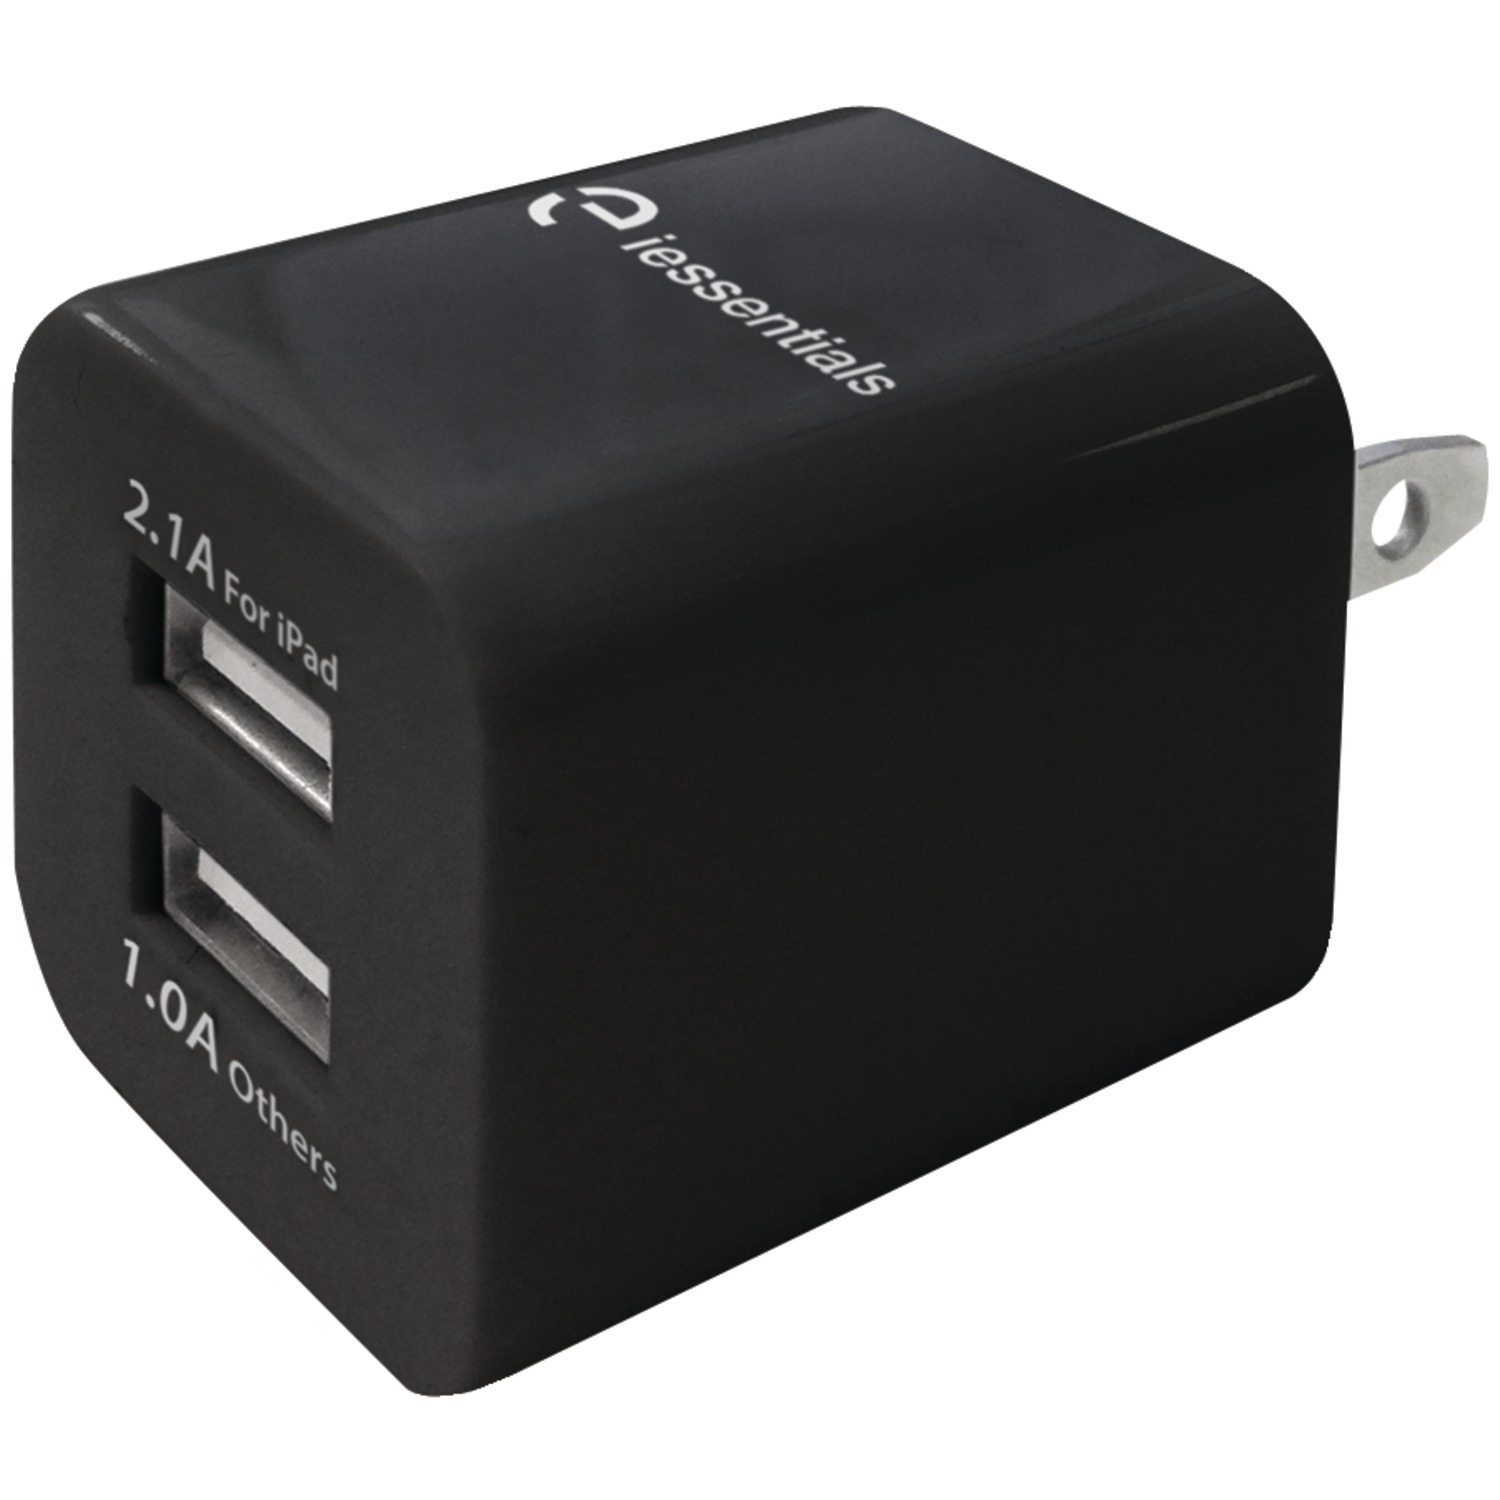 iessentials ie acp 2uc 3 4 amp dual usb wall charger. Black Bedroom Furniture Sets. Home Design Ideas